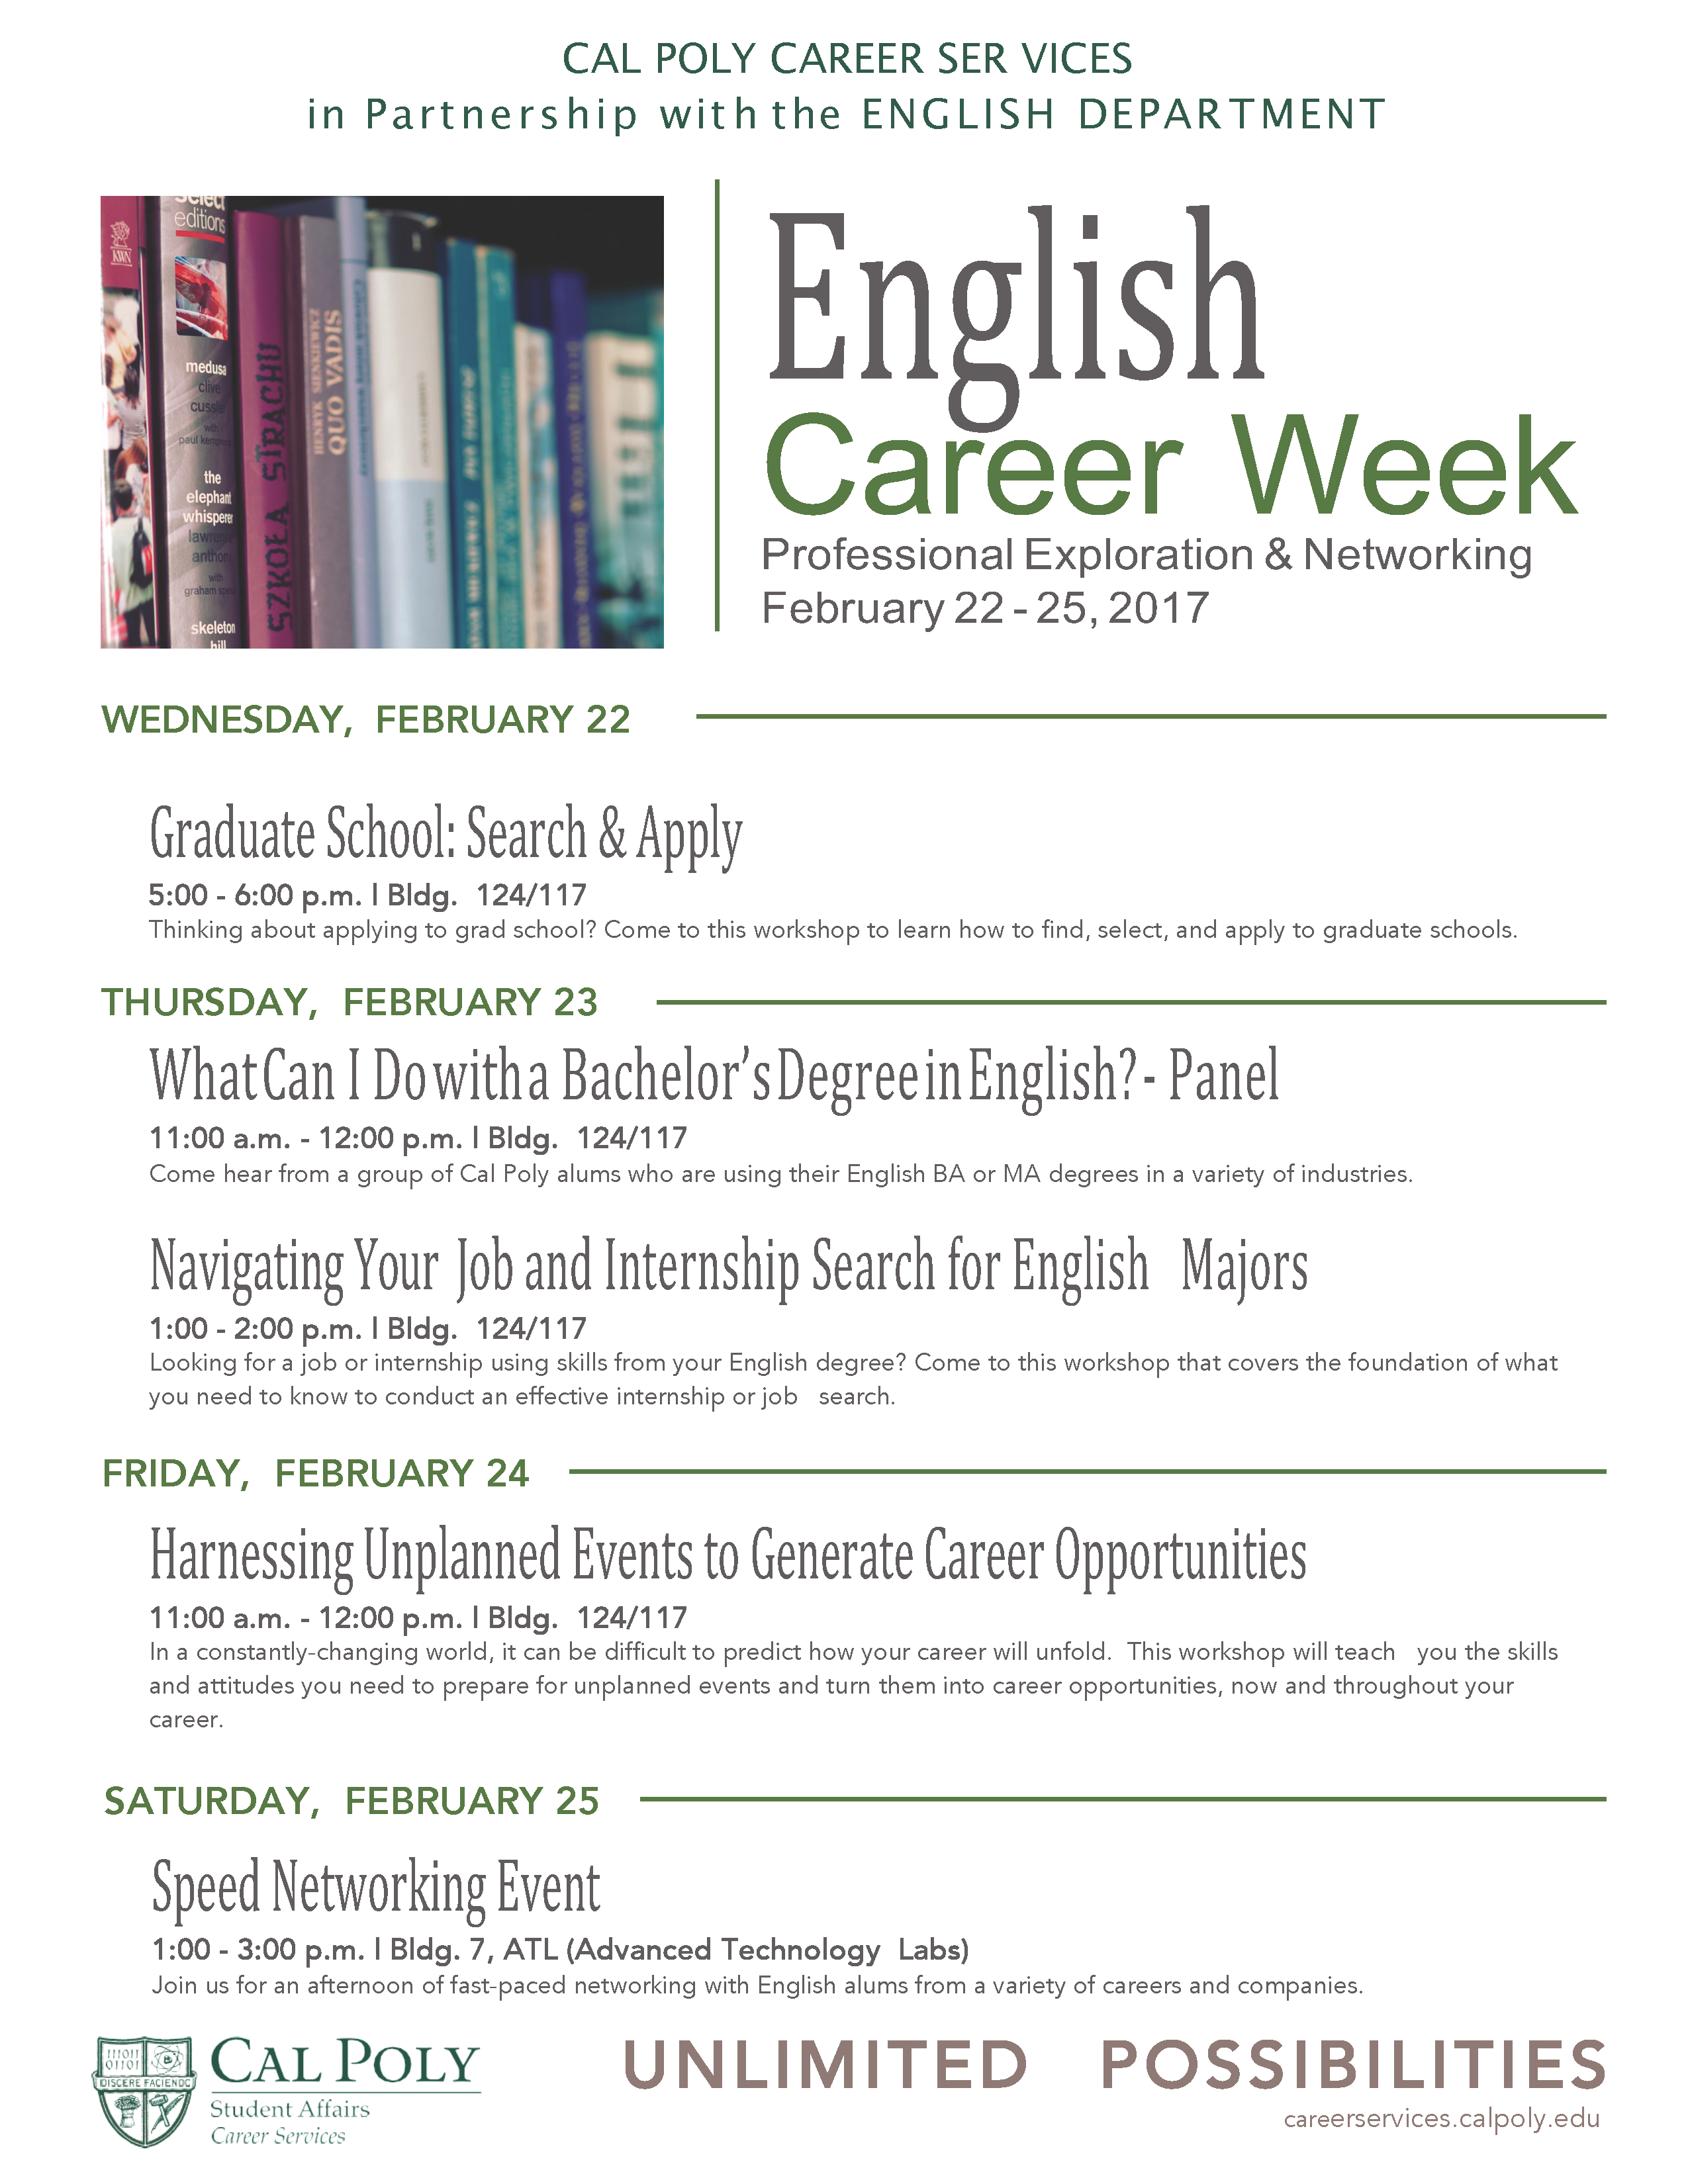 English Career Week Flyer